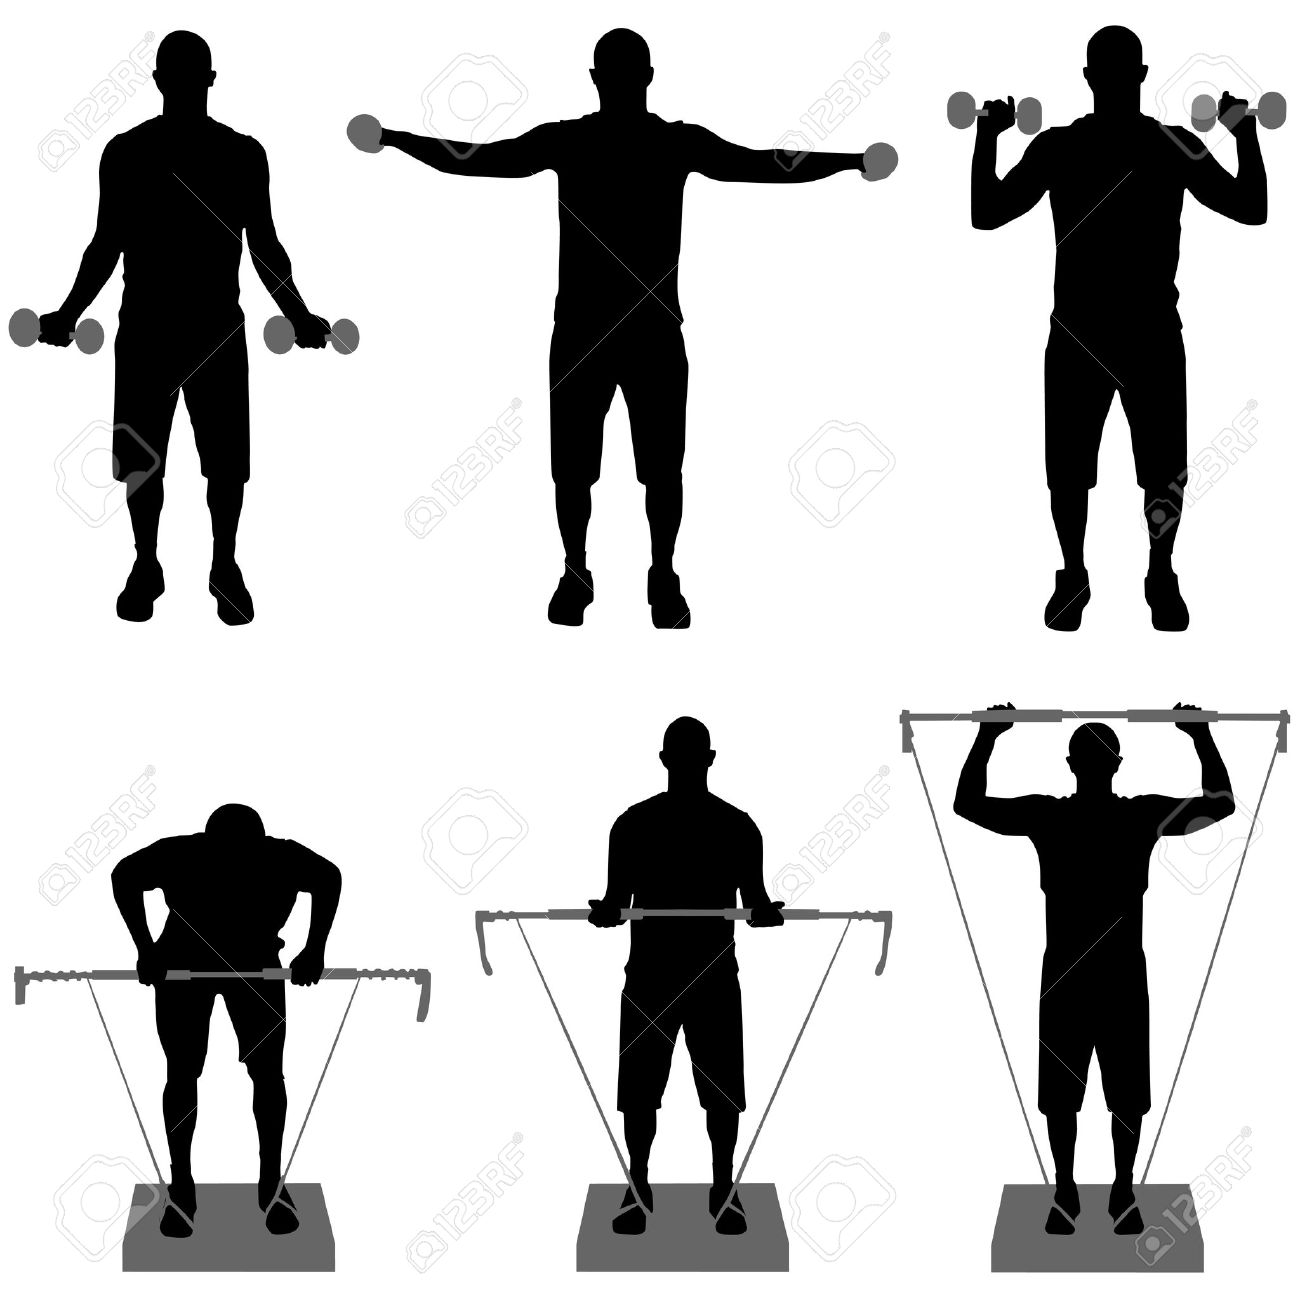 hight resolution of 1300x1300 gym fitness silhouette clipart